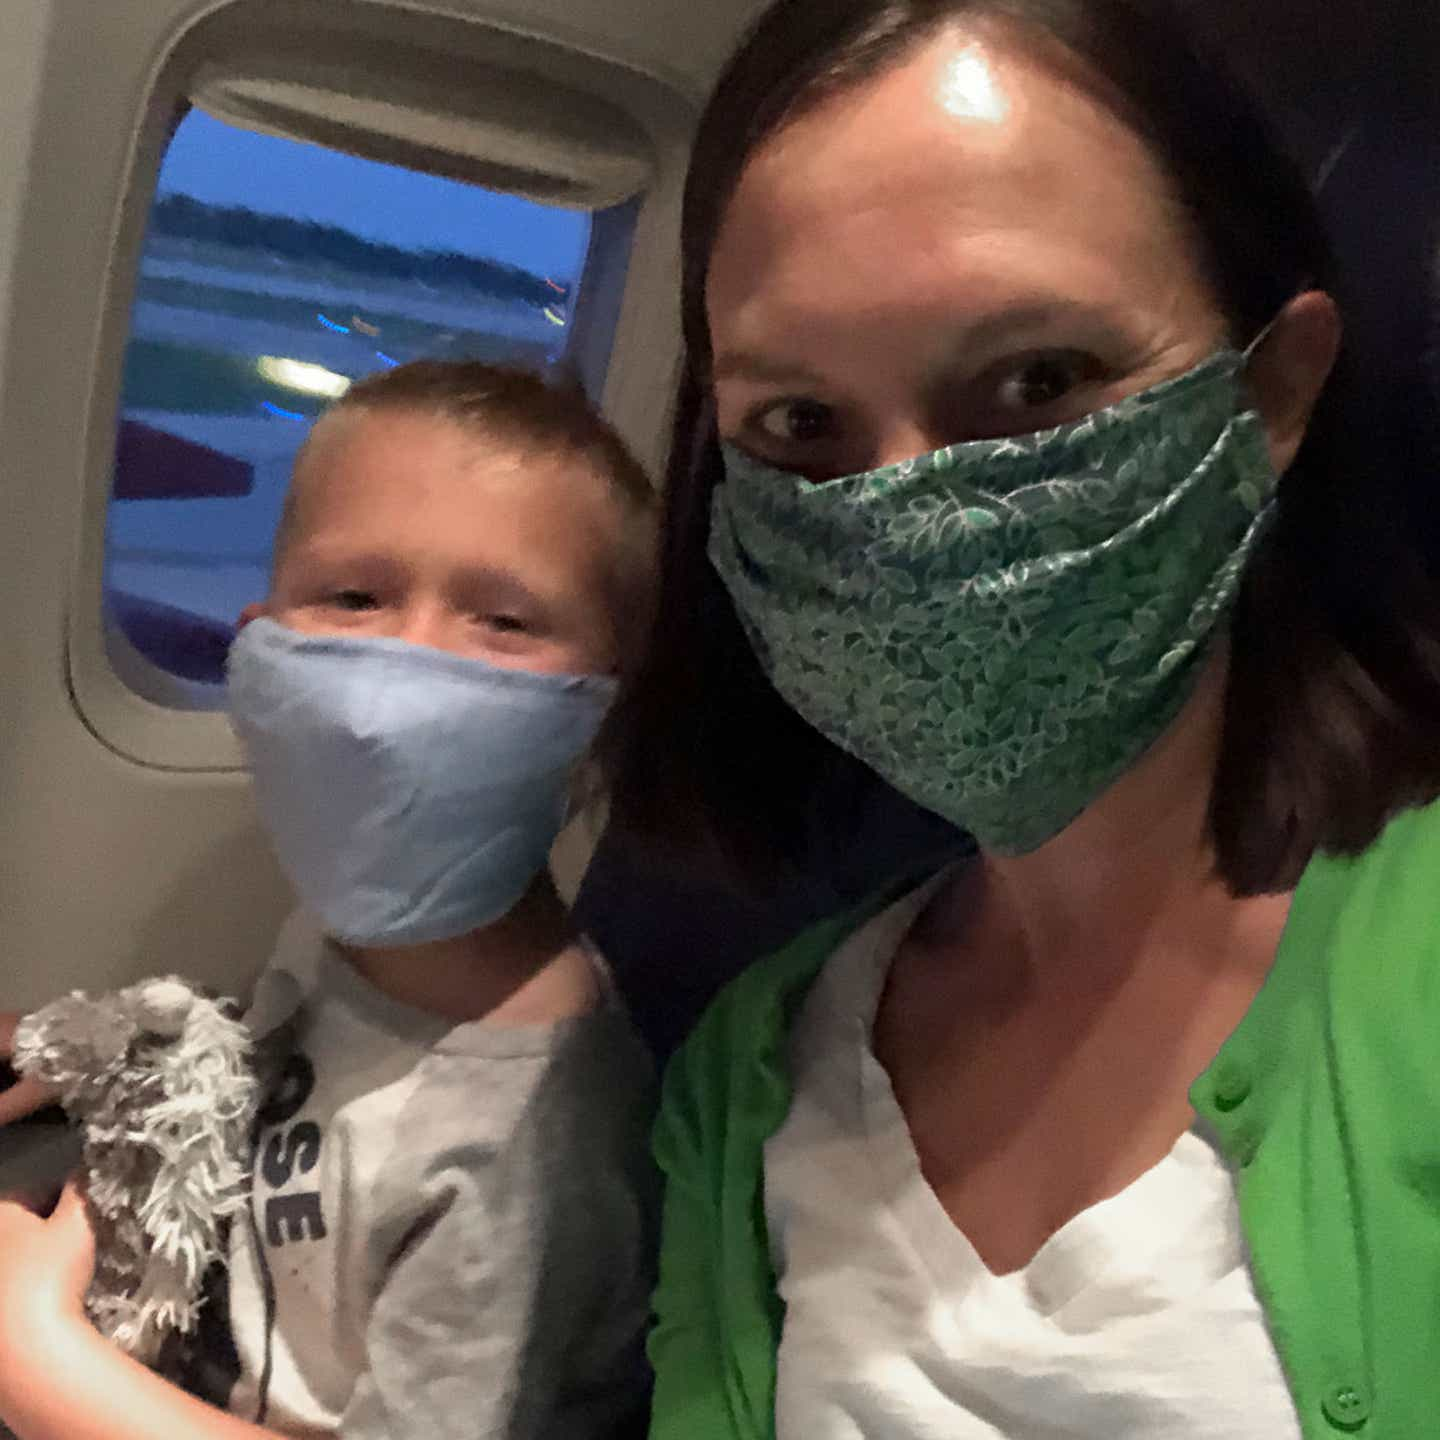 Author, Sarah, and son, Logan, sit near the window seat on their airplane wearing masks for safety.